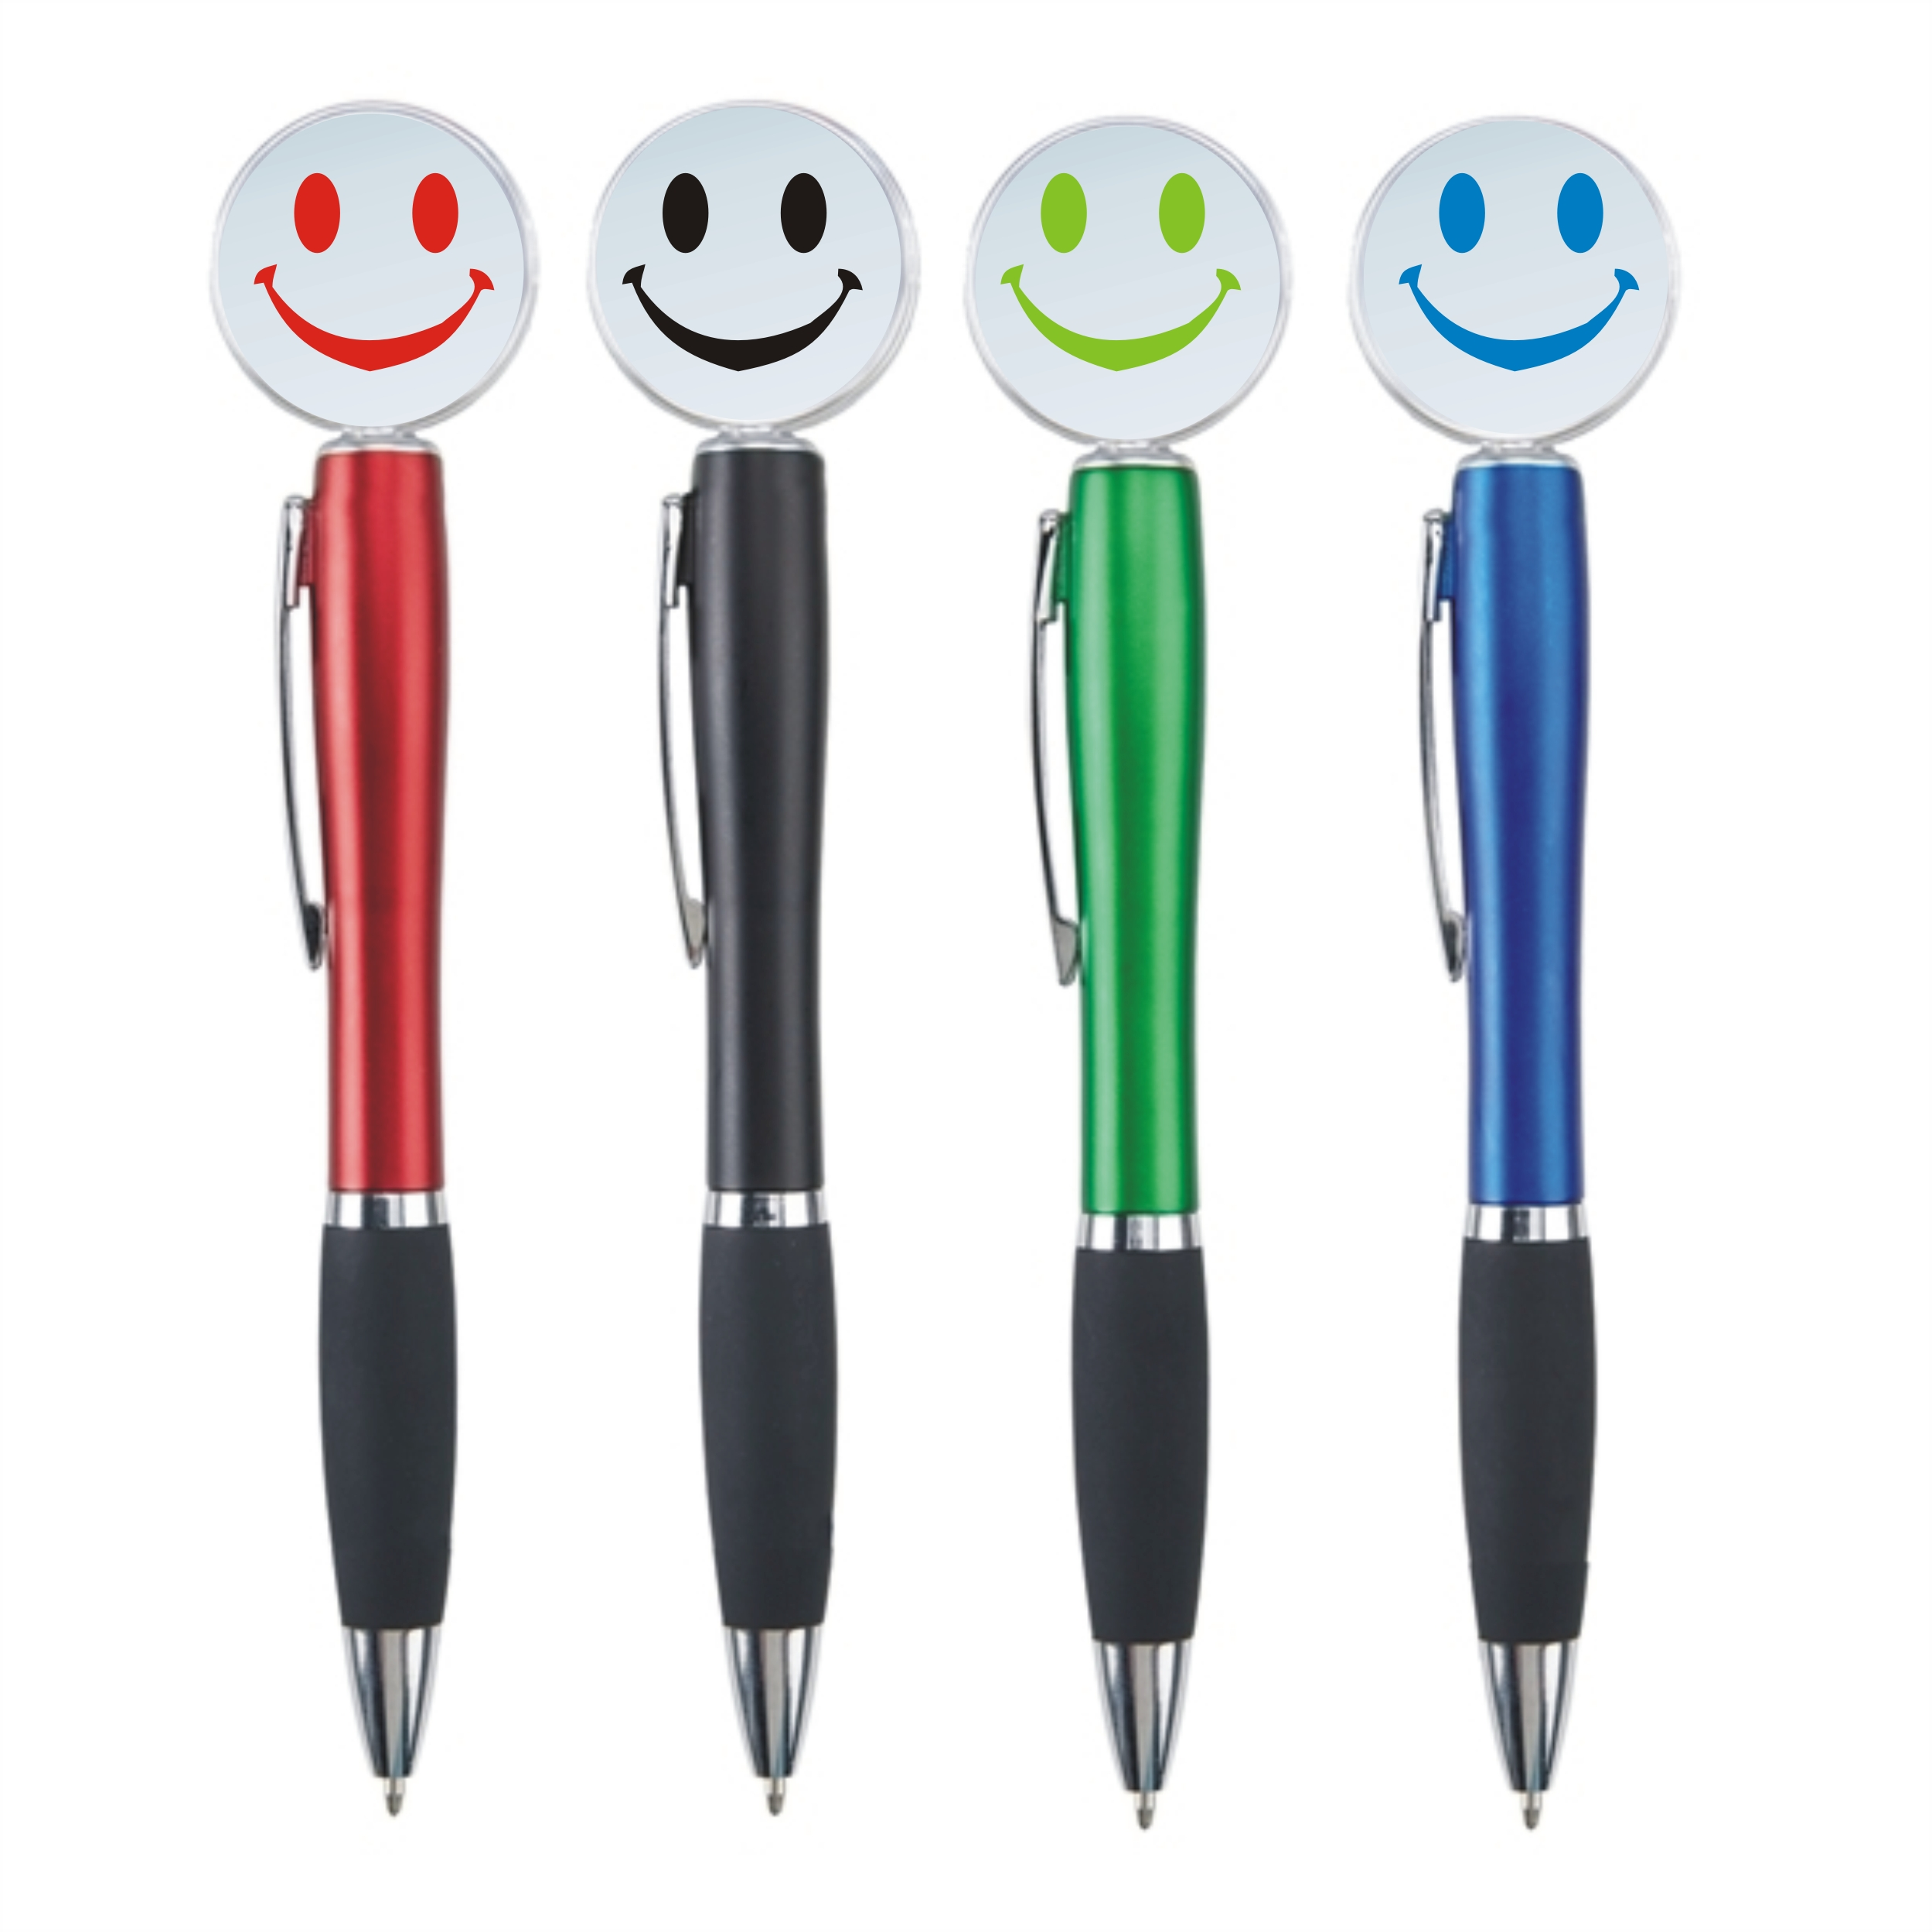 Custom Imprinted Light Up Smiley Face Fun Pens!